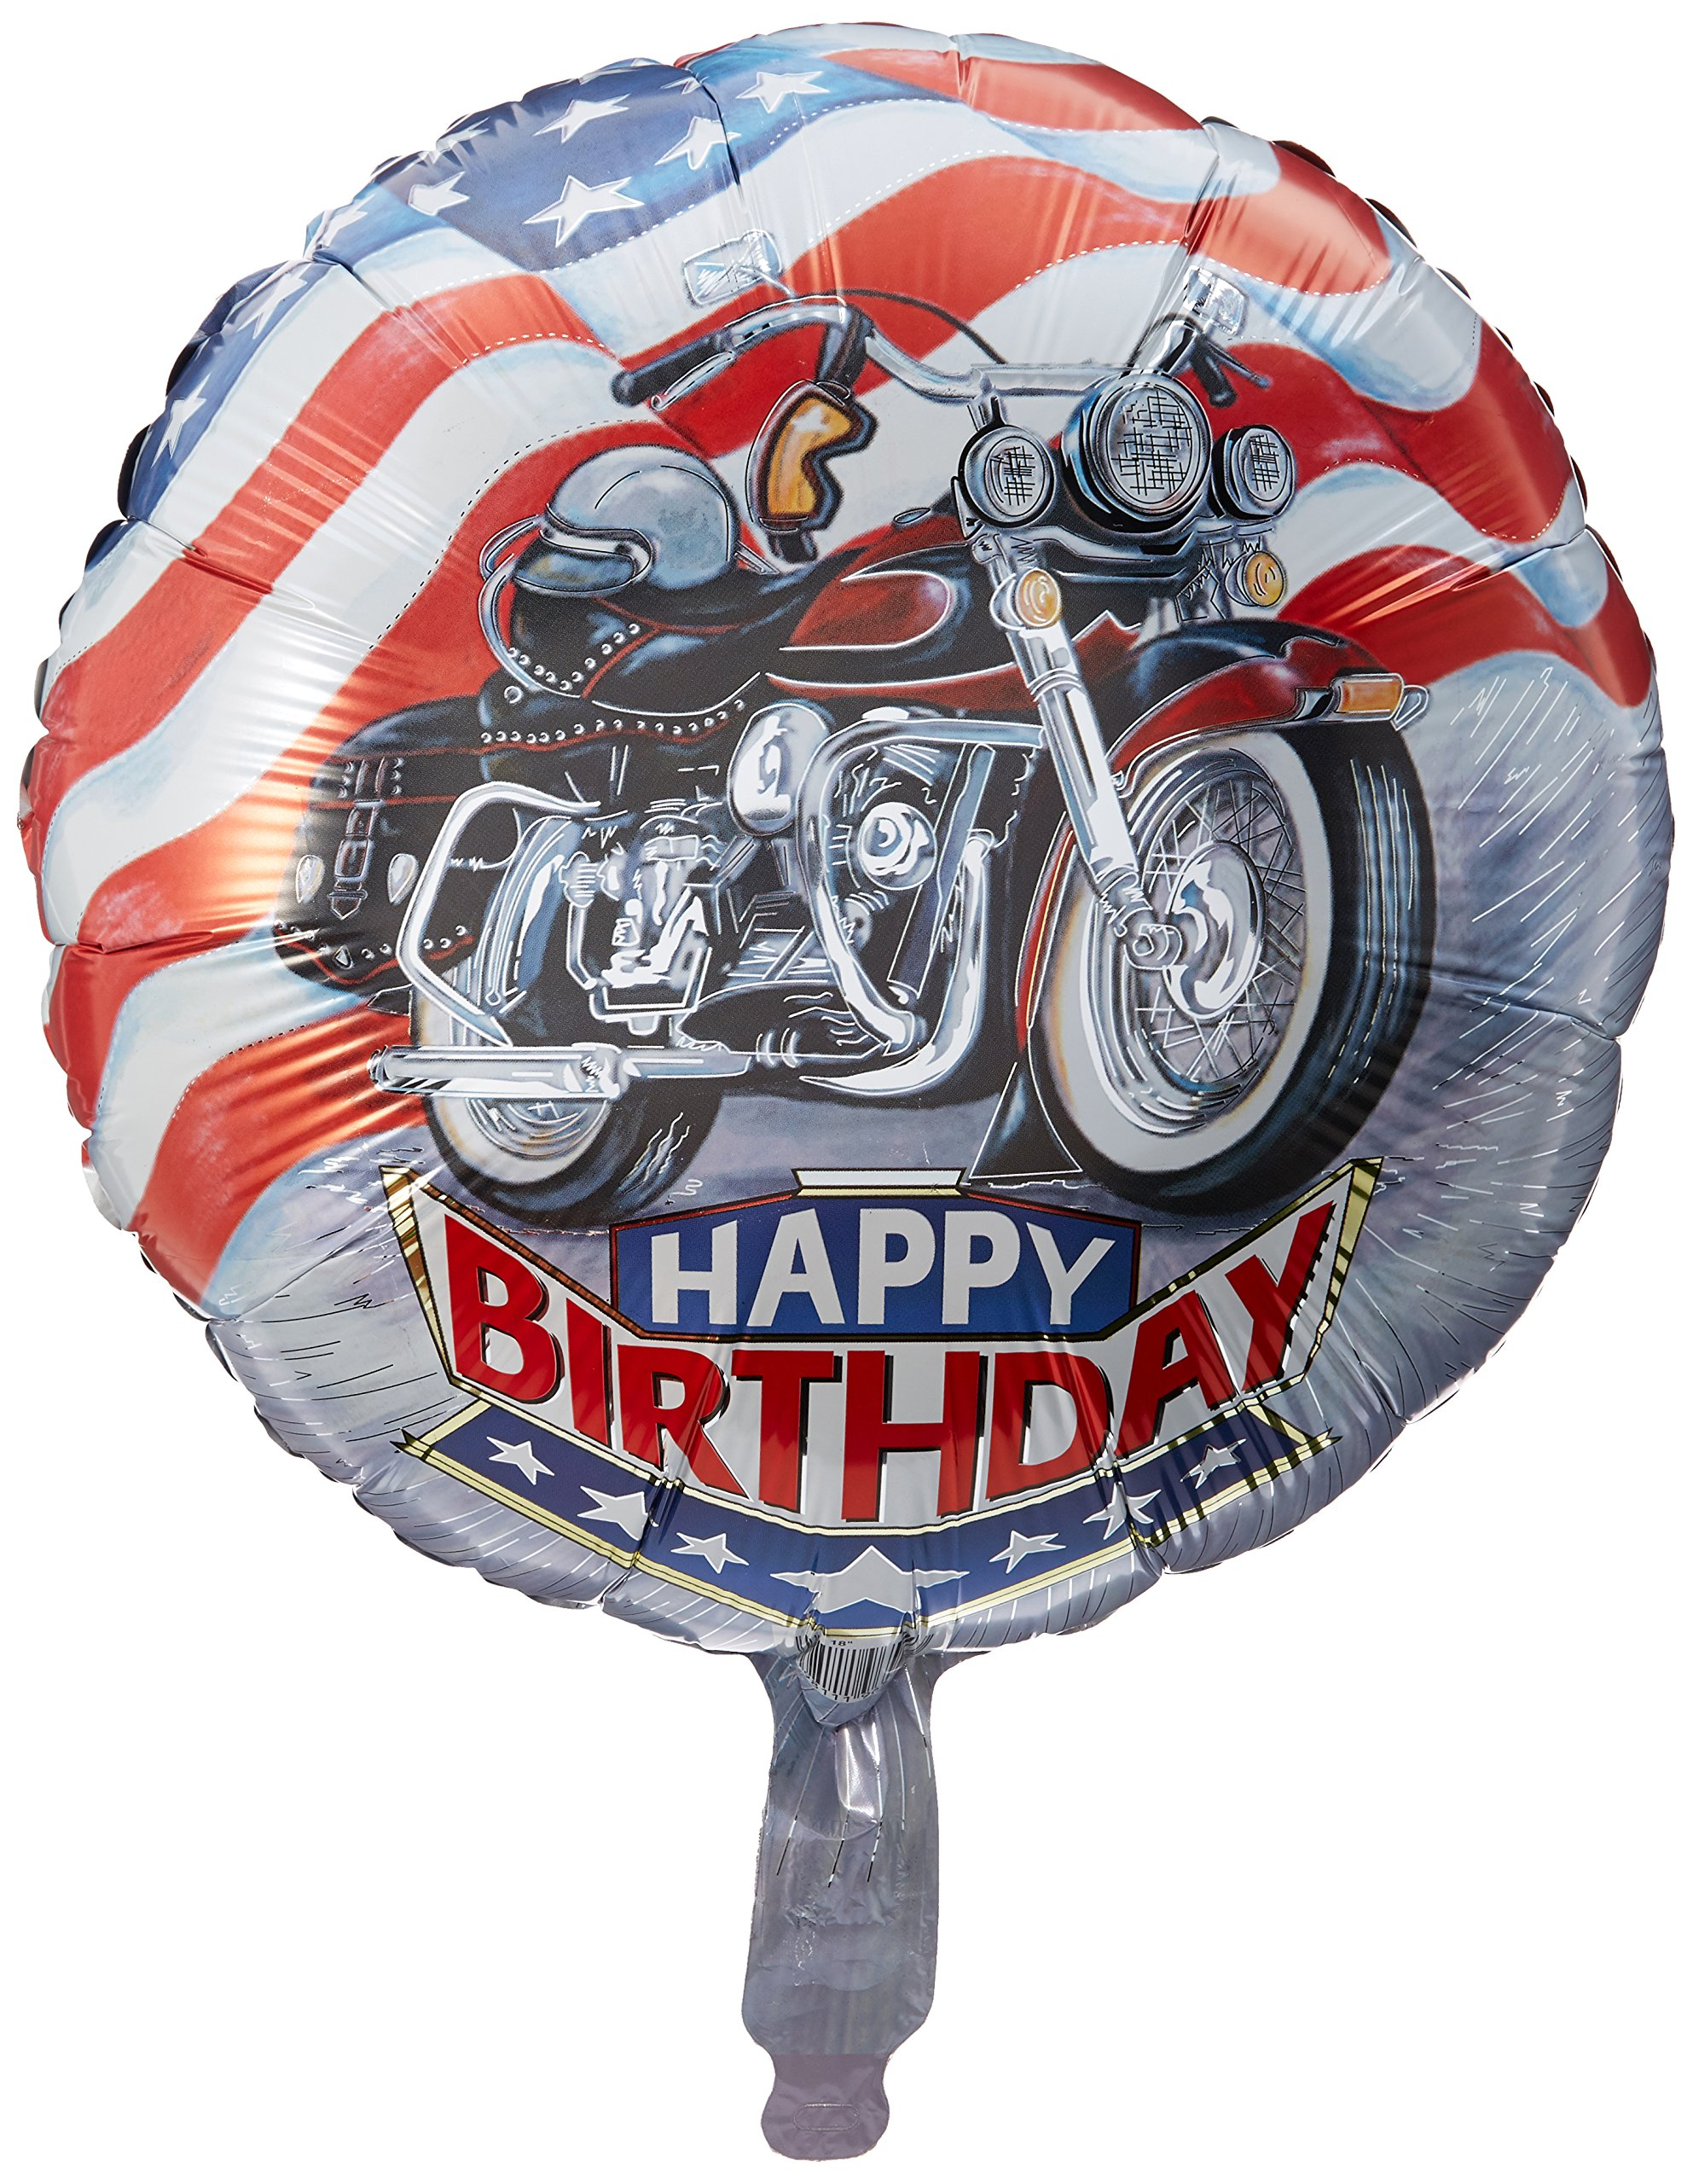 Snarly Motorcycle Balloon